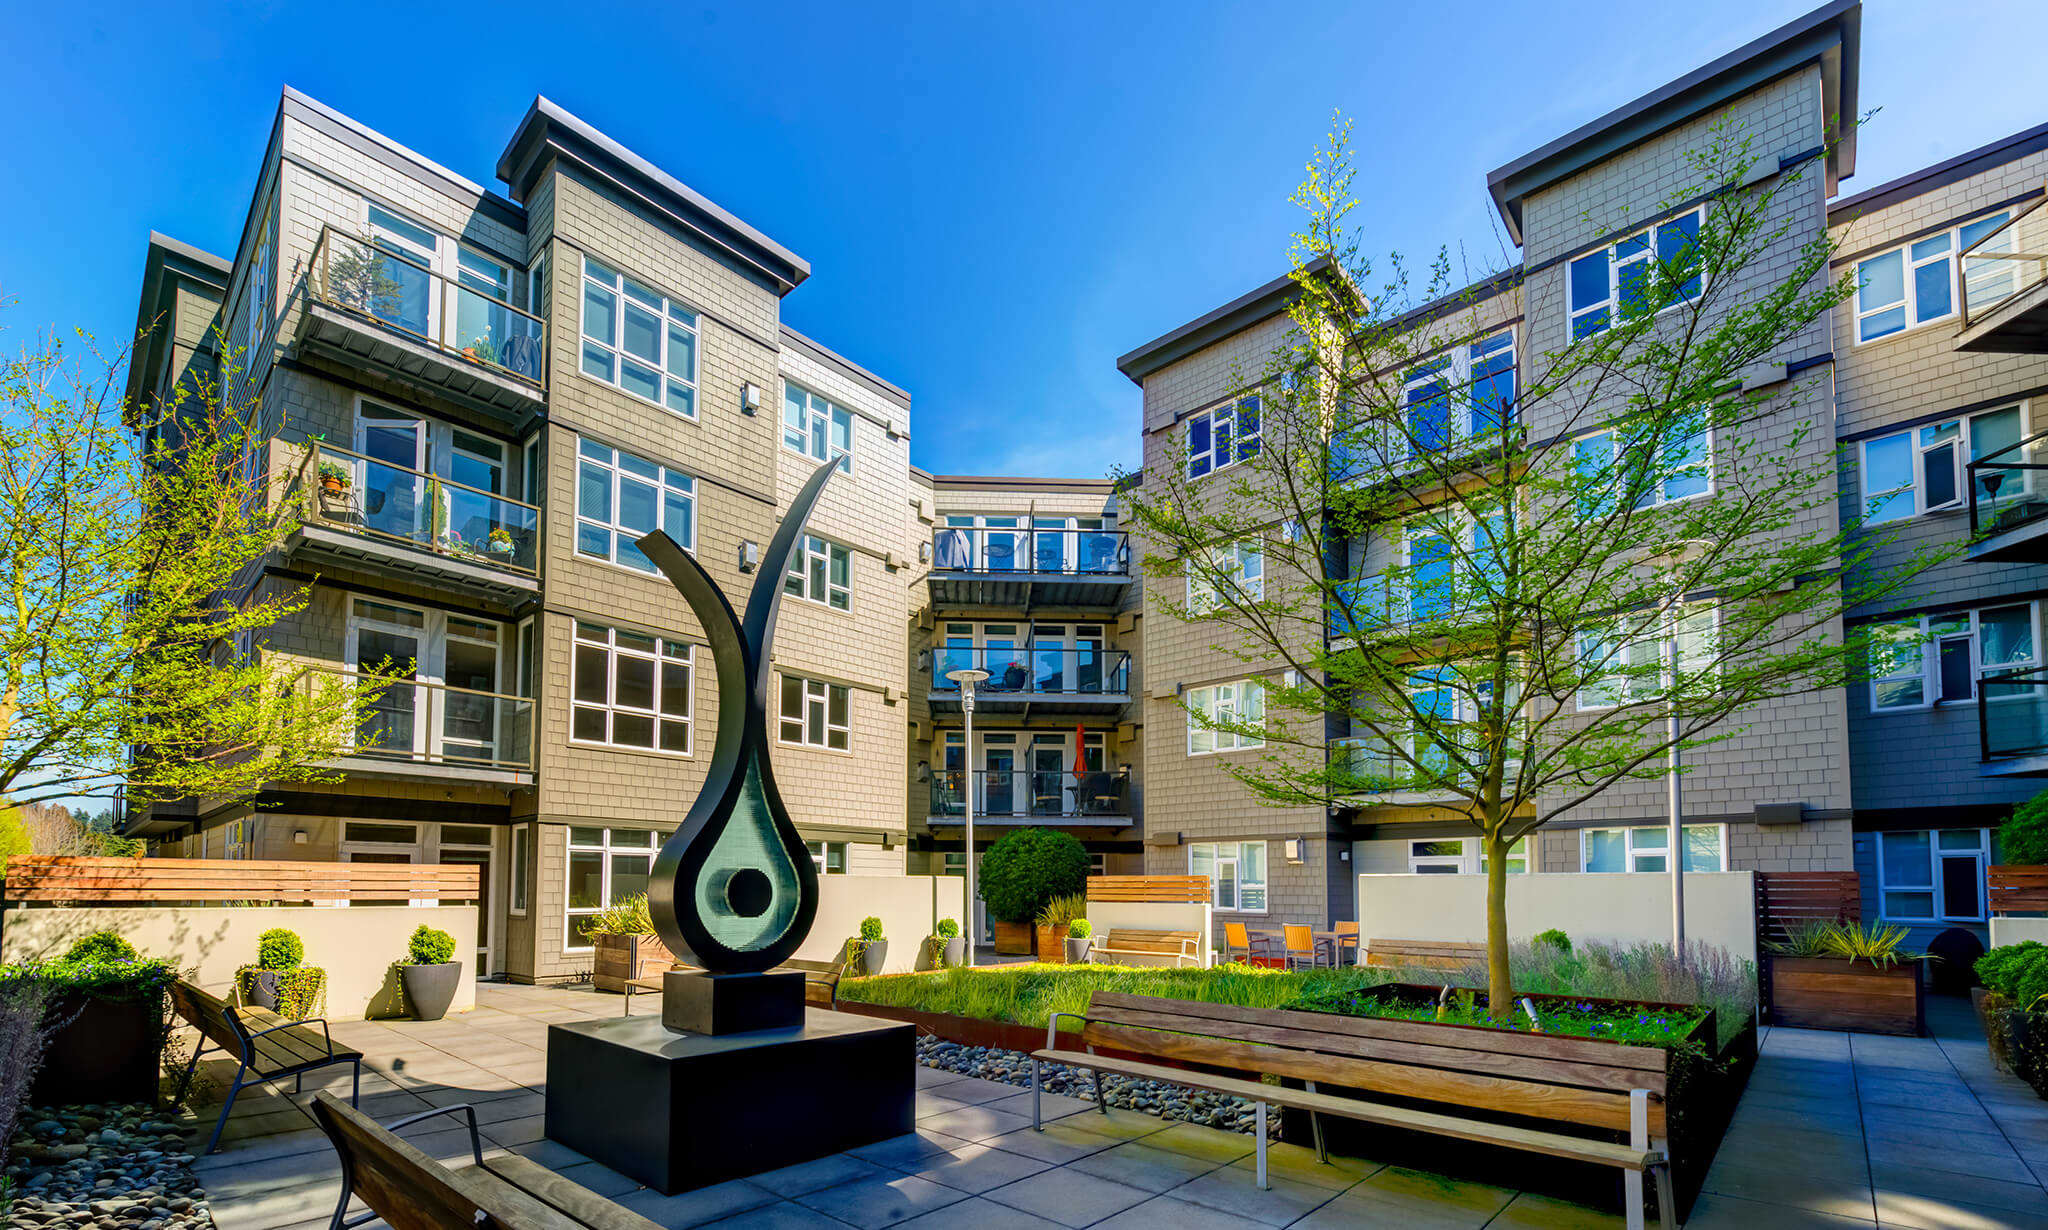 128 on State Apartments apartments in Kirkland WA to rent photo 4